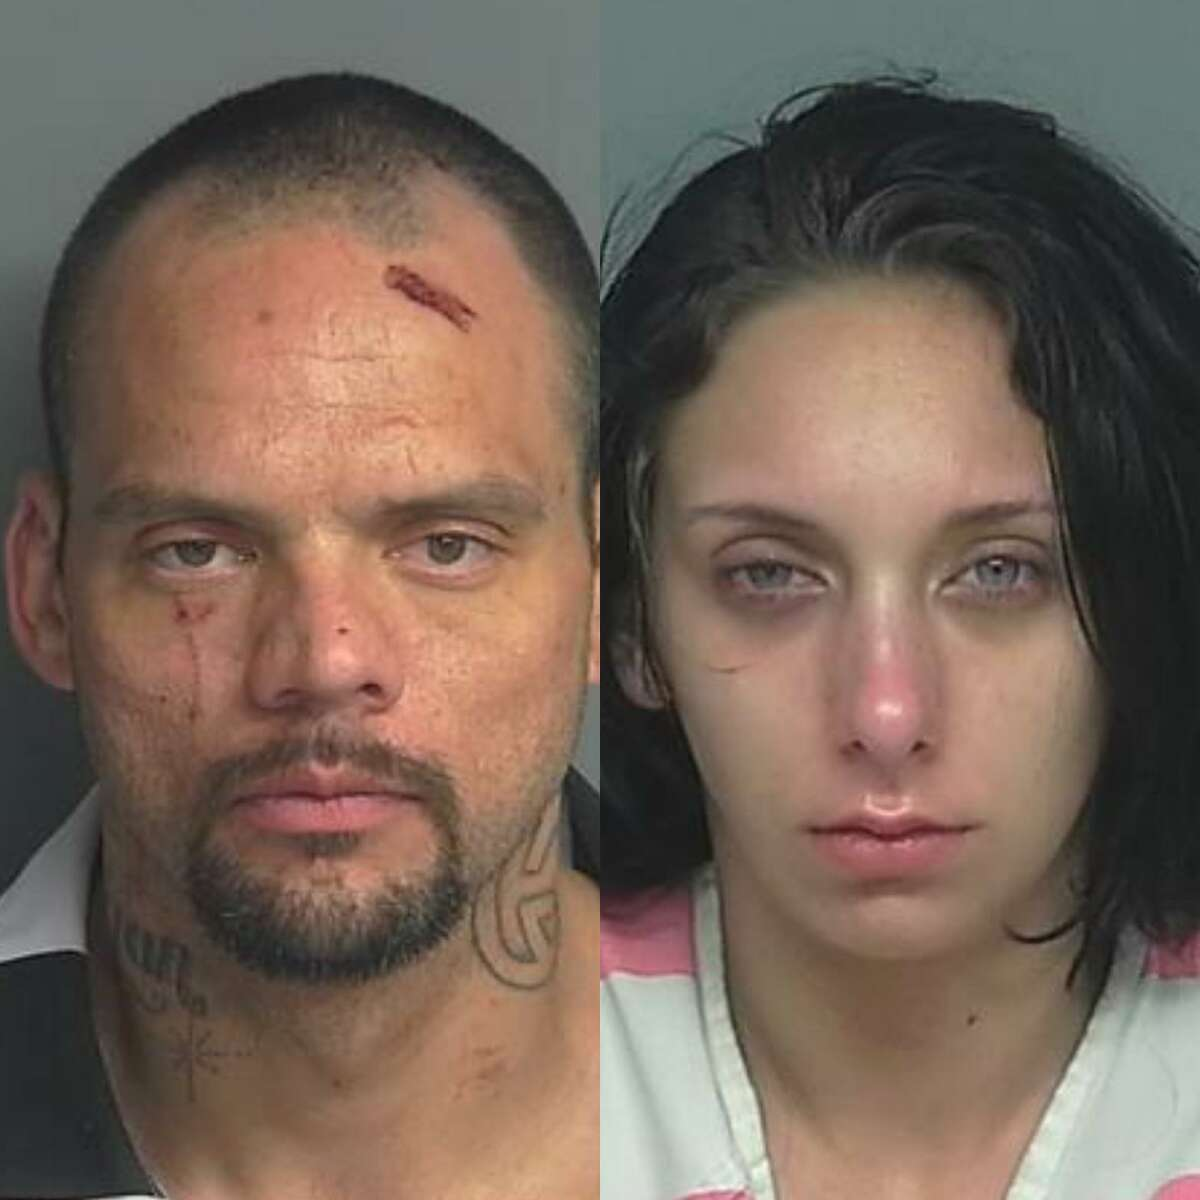 Dylan Gregory Brown, 36, of Magnolia, is being charged with evading arrest with a vehicle, a third-degree felony, burglary of building, unauthorized use of a vehicle, both state jail felonies, resisting arrest, search or transportation, and evading arrest, both Class A misdemeanors. Jasmine Loraine Lugo, 19, of Plantersville, is being charged with evading arrest, a Class A misdemeanor, and theft more than $100, a Class C misdemeanor.